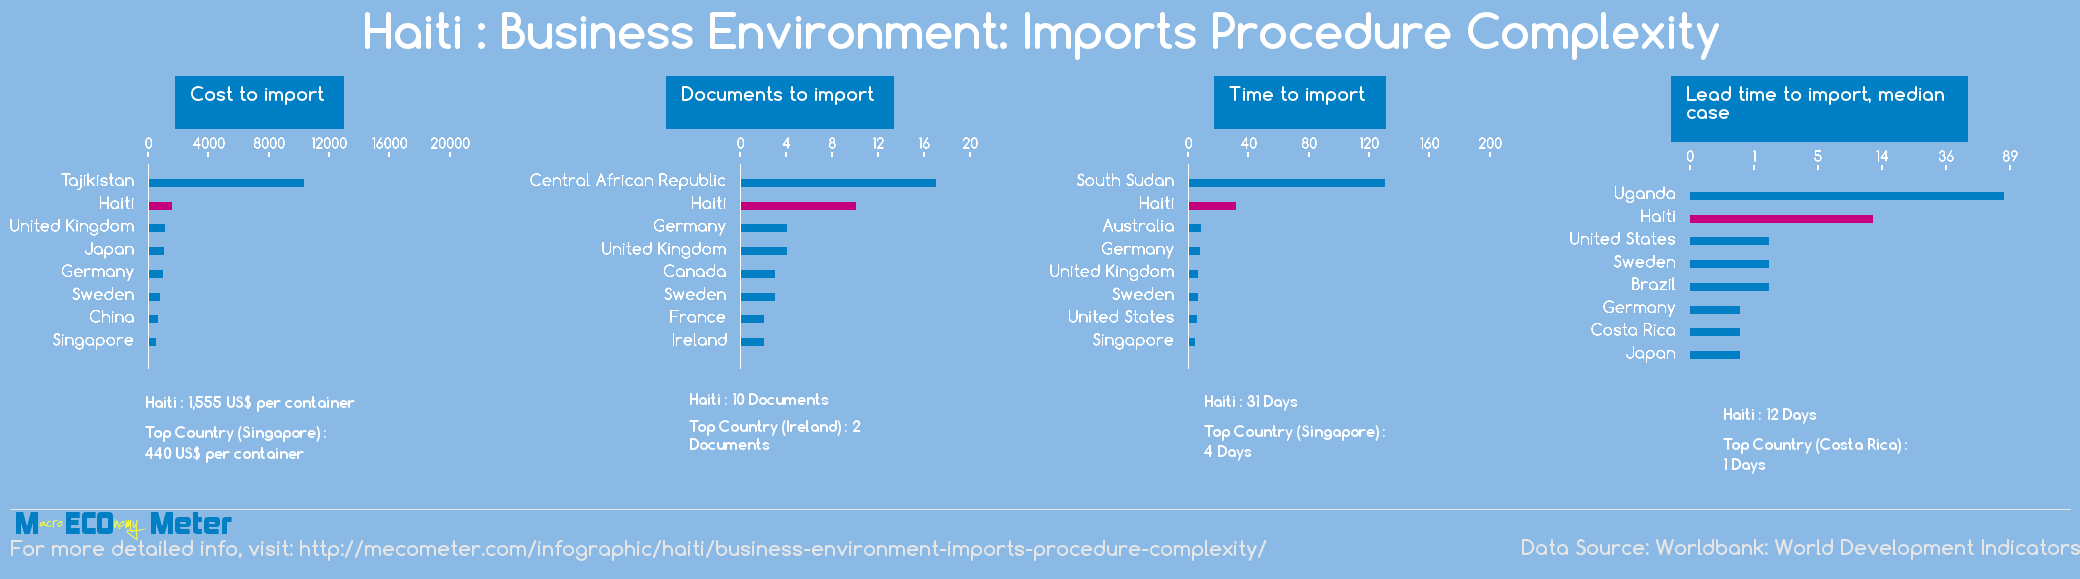 Haiti : Business Environment: Imports Procedure Complexity